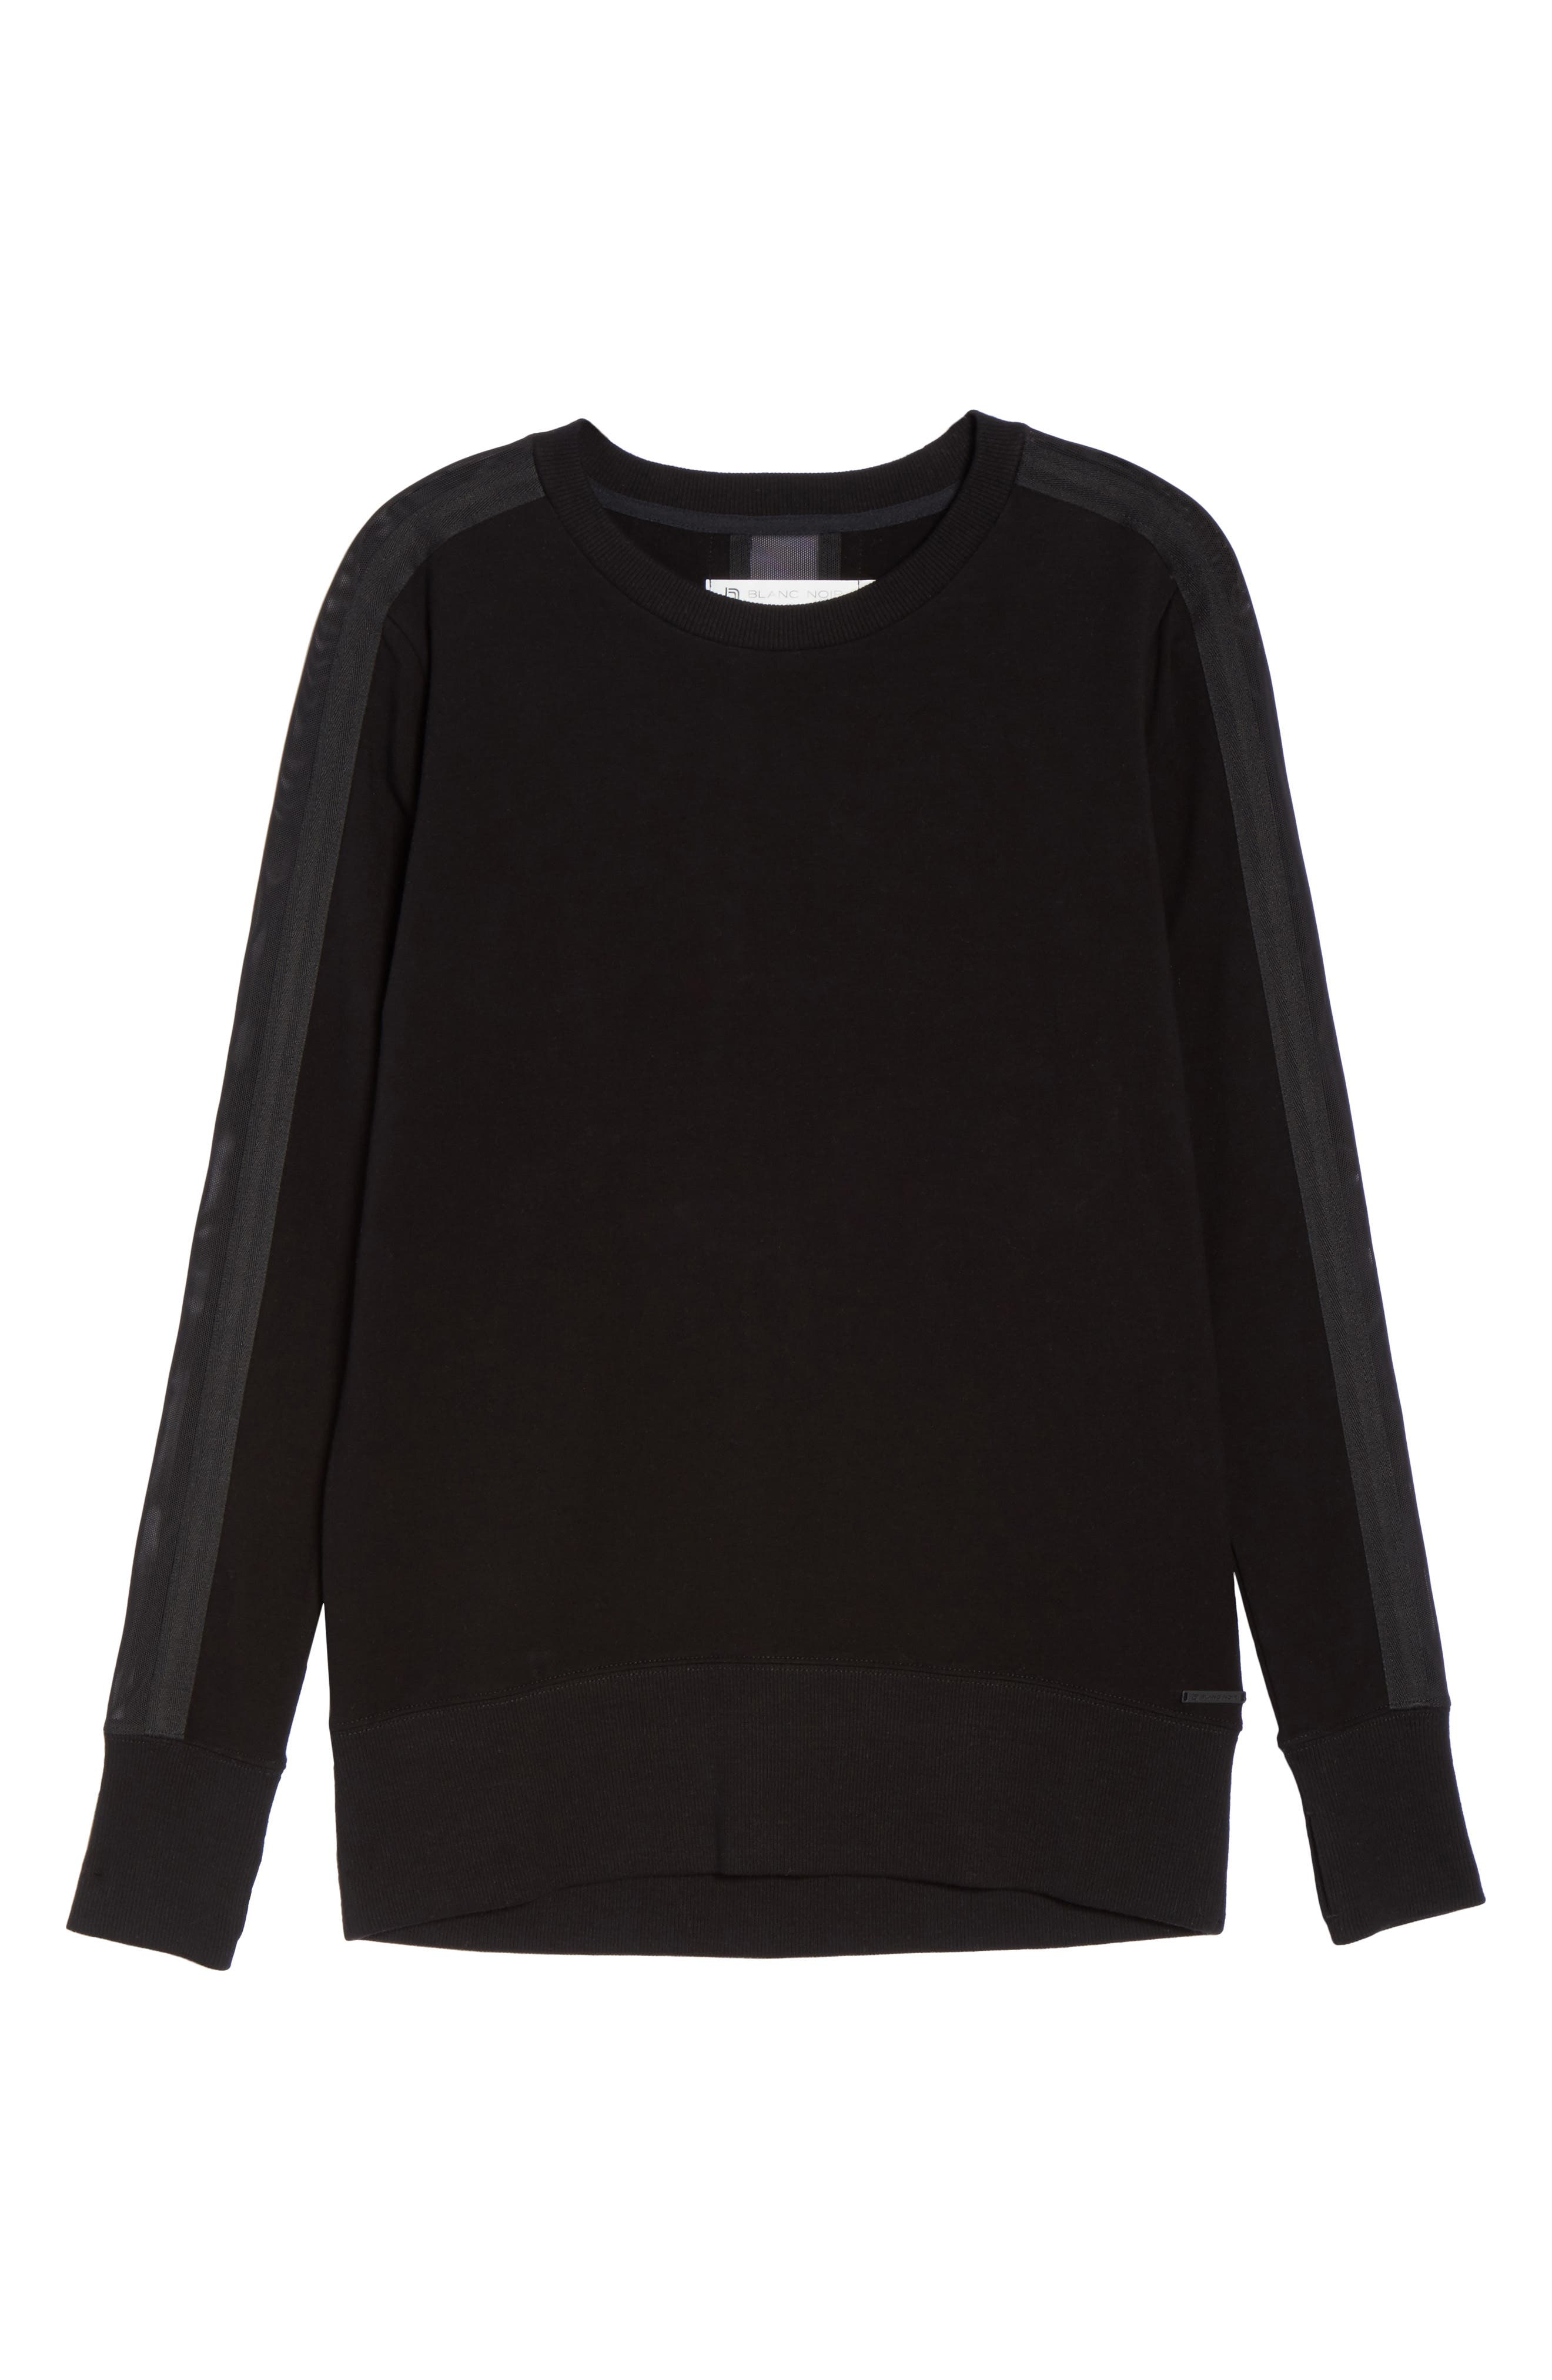 Social Sweatshirt,                             Alternate thumbnail 7, color,                             001